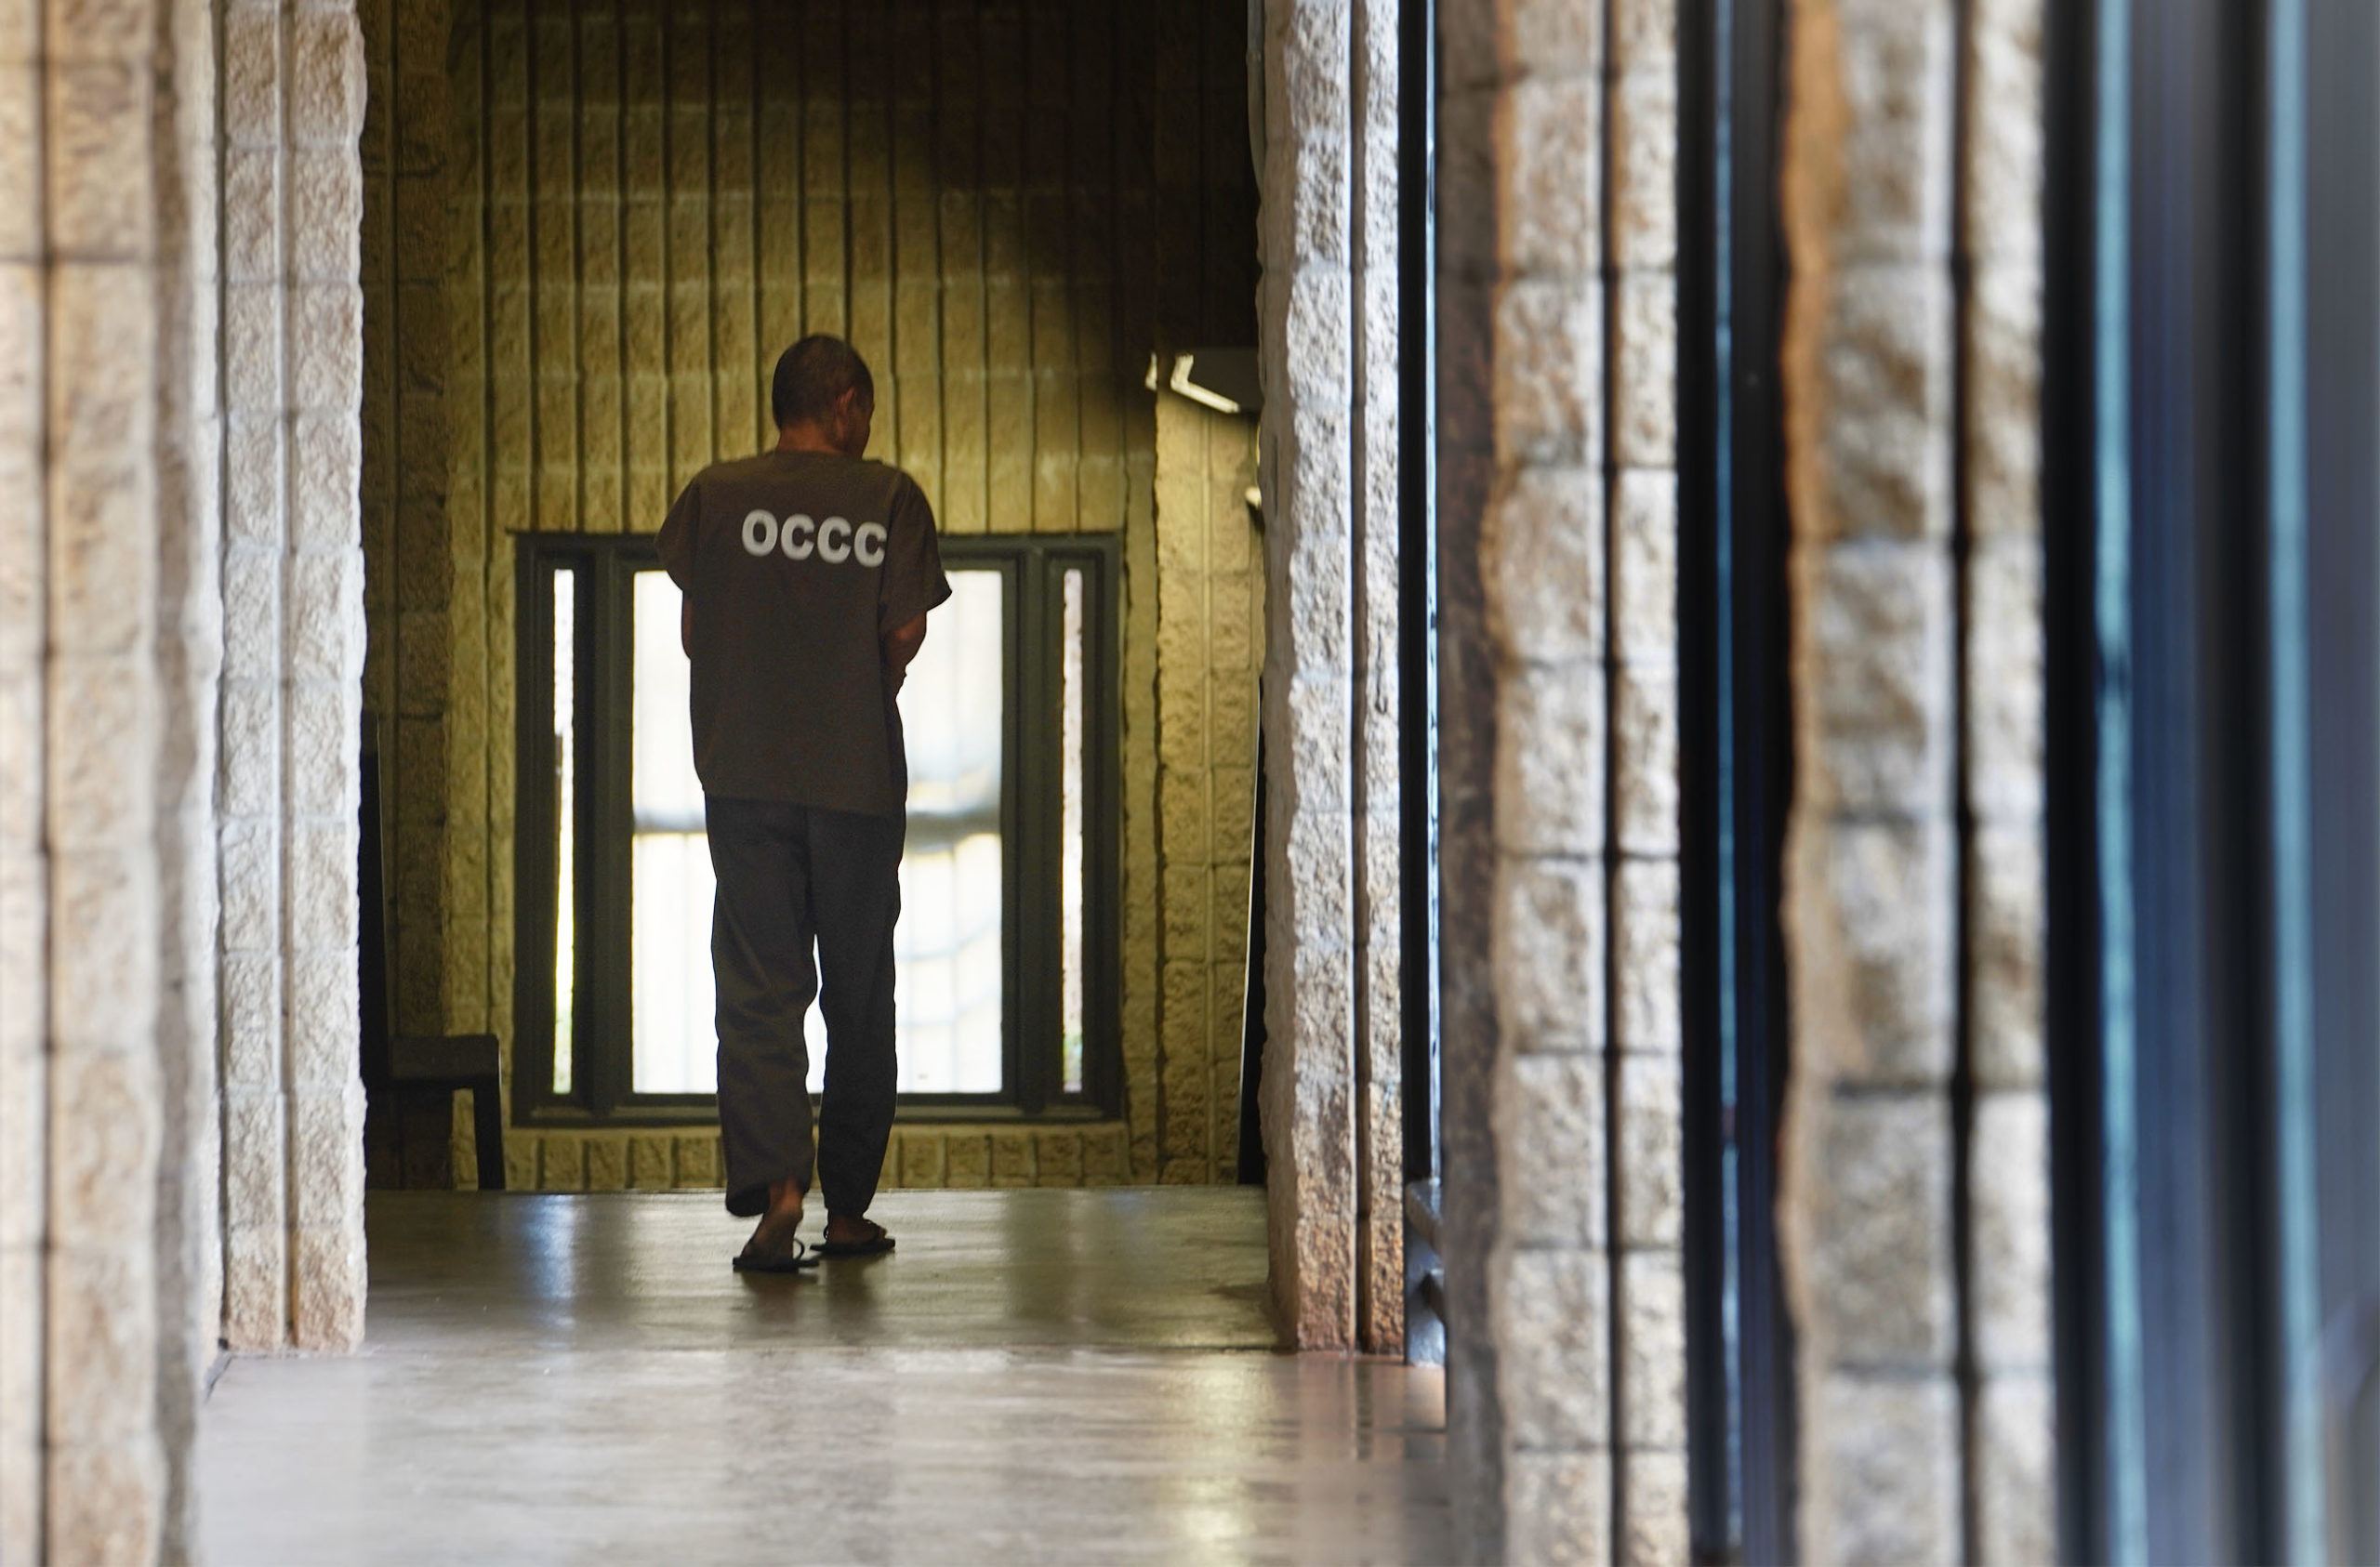 <p>Corrections supervisors in Hawaii have pointed to recruiting as one of the biggest challenges they're facing today. OCCC has 68 vacancies for corrections officers and 16 vacancies for civilian positions. Espinda, the public safety director, said the department has taken more aggressive approaches to fix that problem.</p>